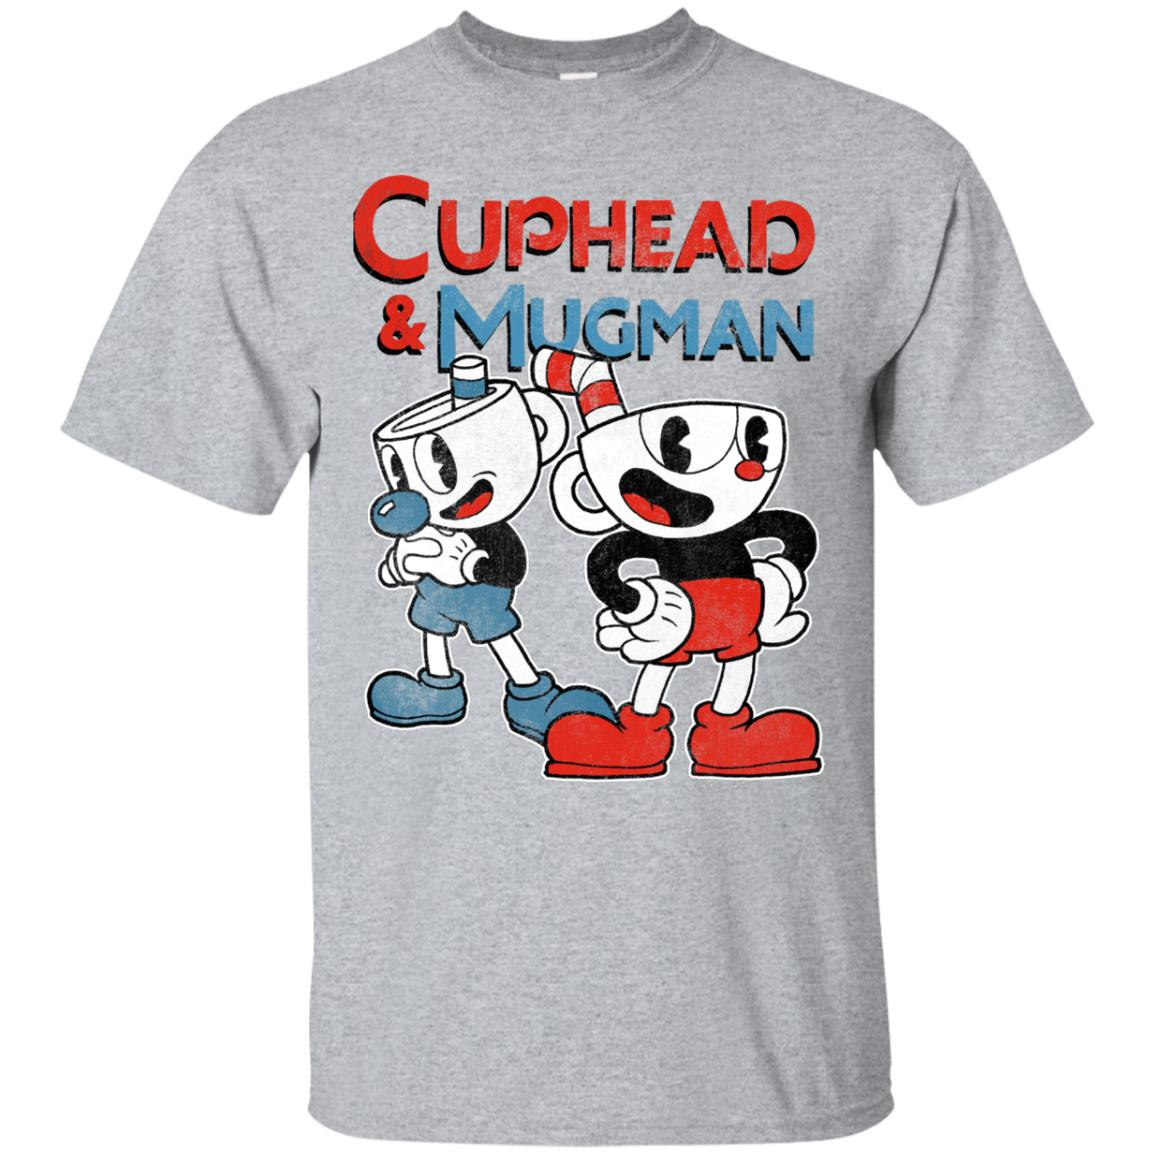 Cuphead & Mugman Dynamic Duo Graphic T-Shirt 99promocode